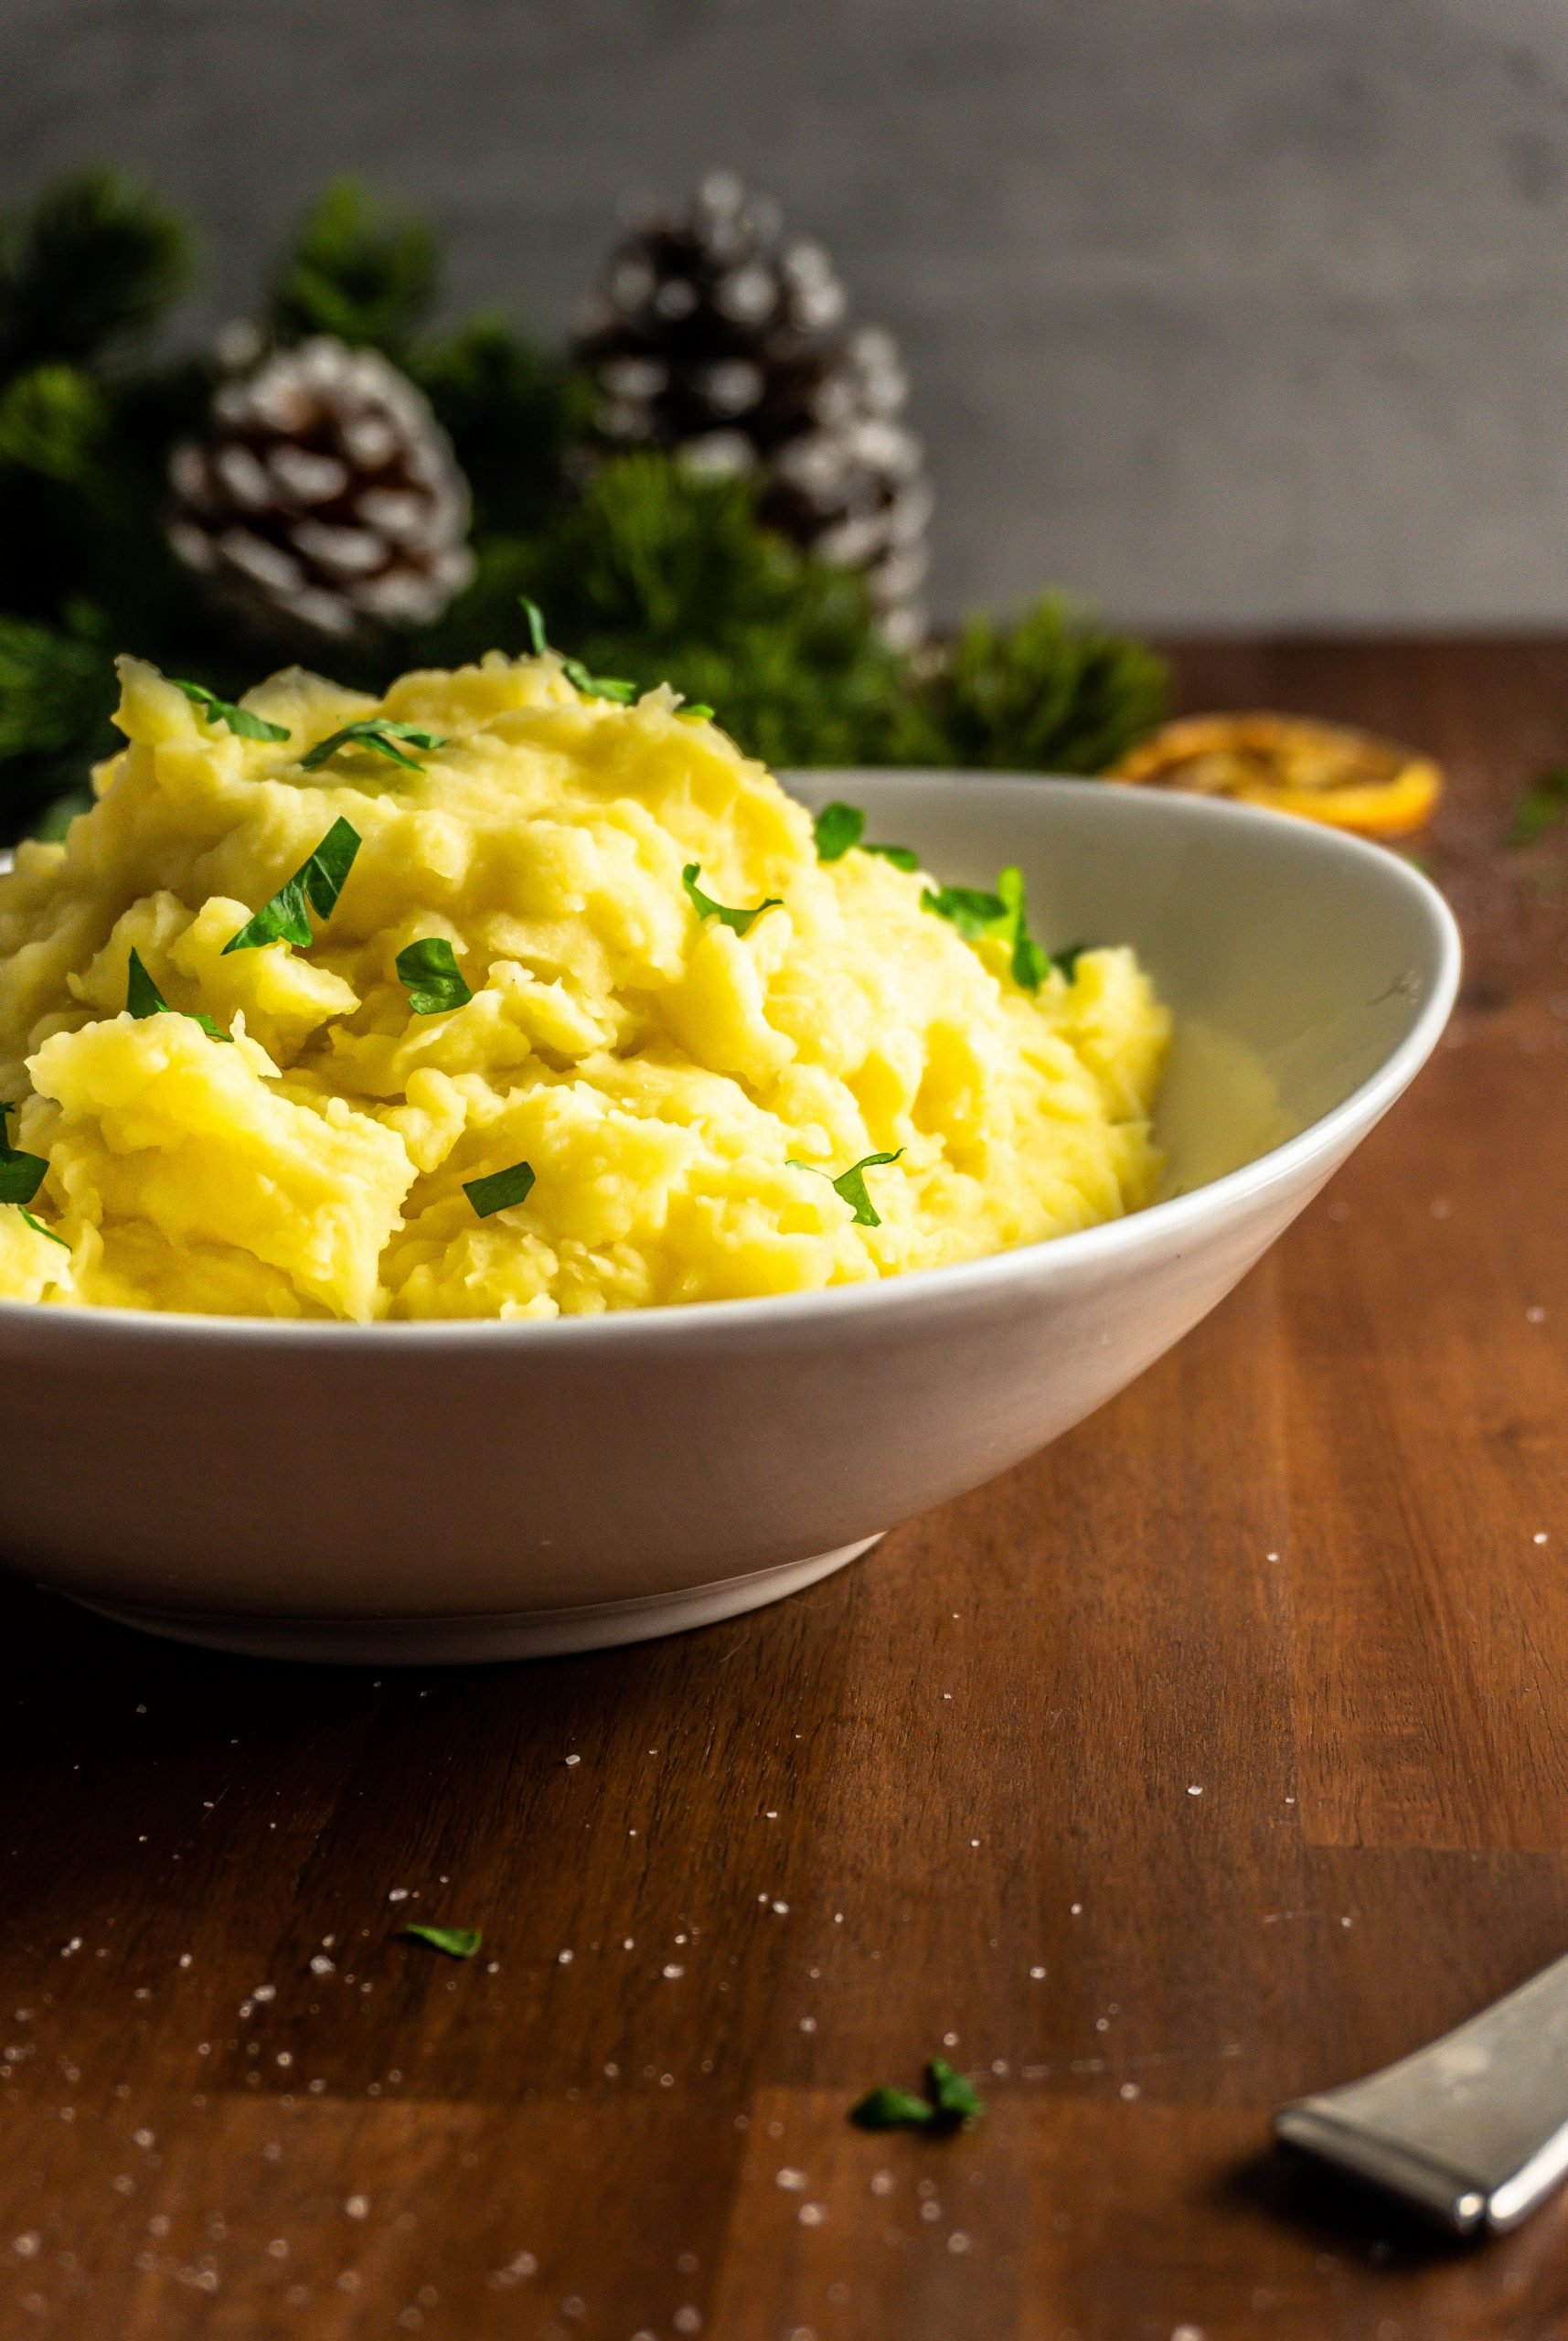 Creamy Mashed Potatoes photographed in a bowl with parsley strewn on top. Shot from a three-quarter angle.